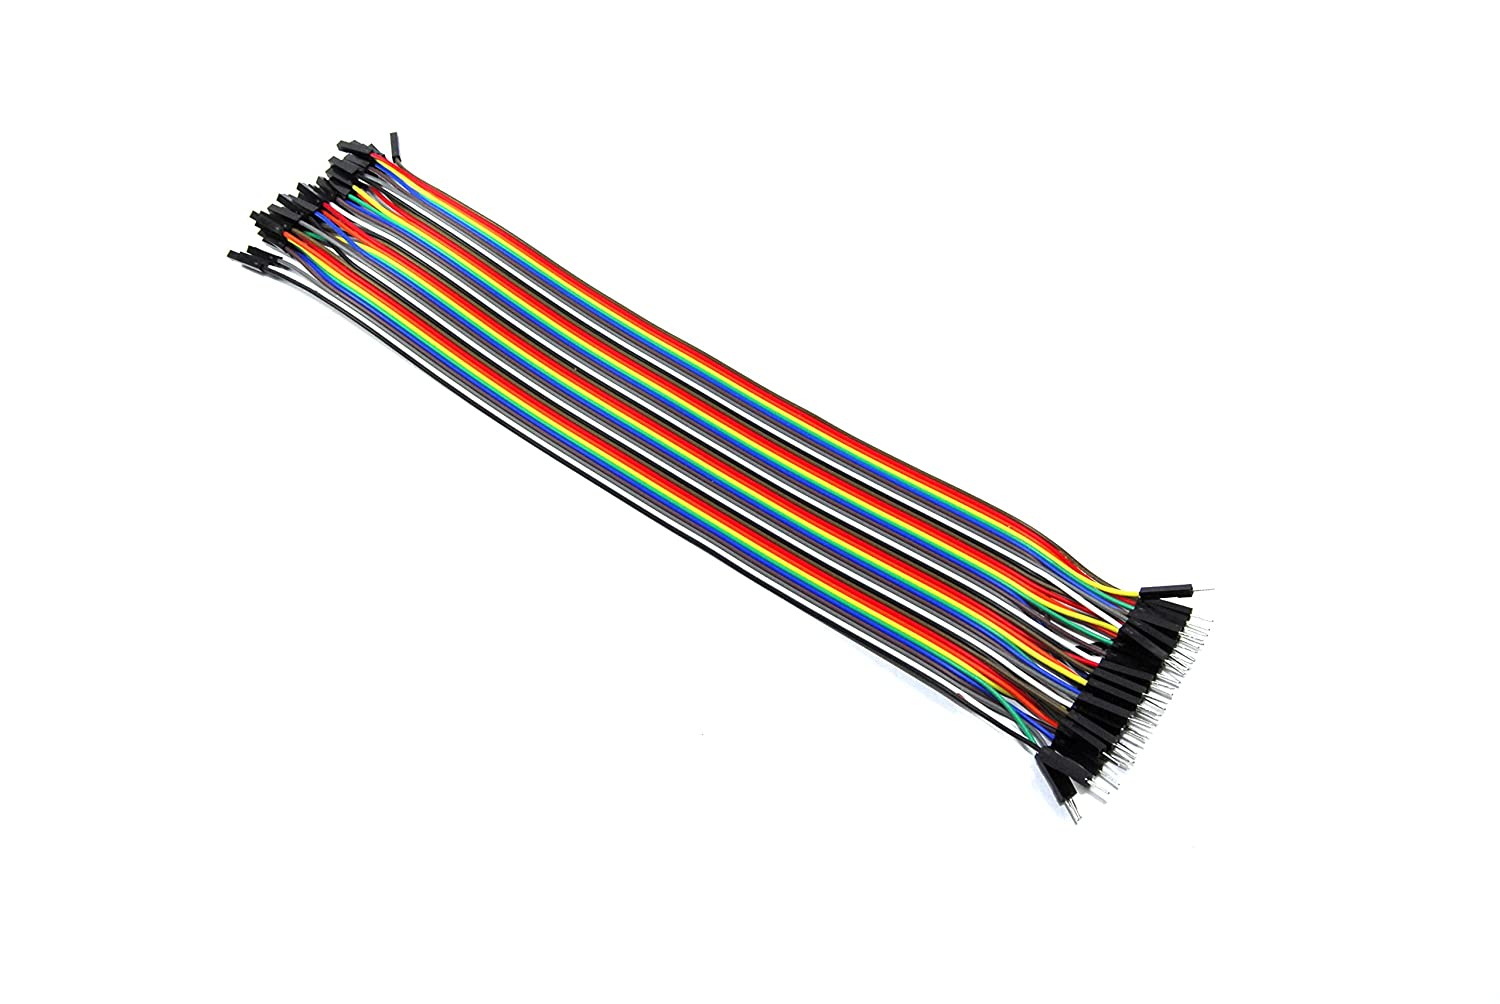 40 Male to Female Jumper Wires Solderless 30cm Ribbon Arduino Unbranded/Generic GBAA100006